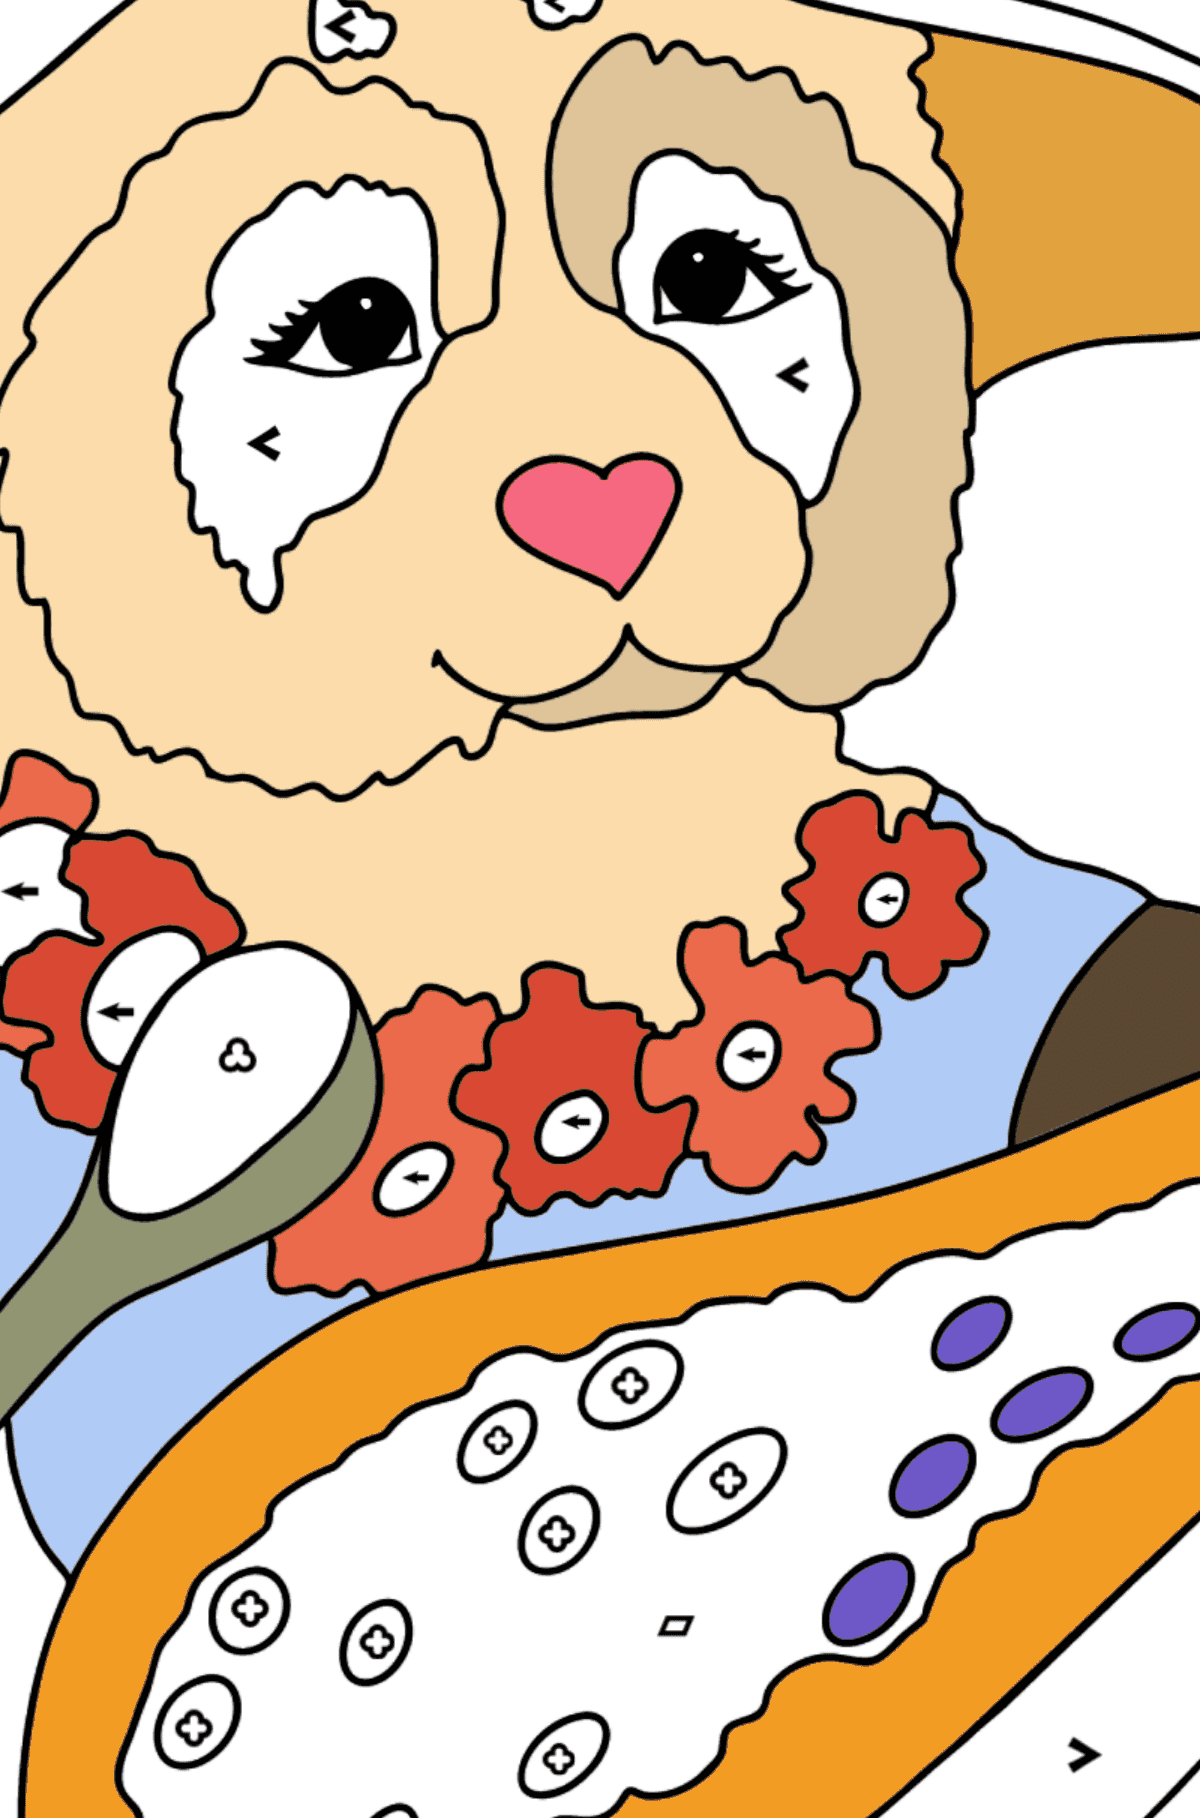 Coloring Page - A Panda is Eating Papaya - Coloring by Symbols and Geometric Shapes for Kids